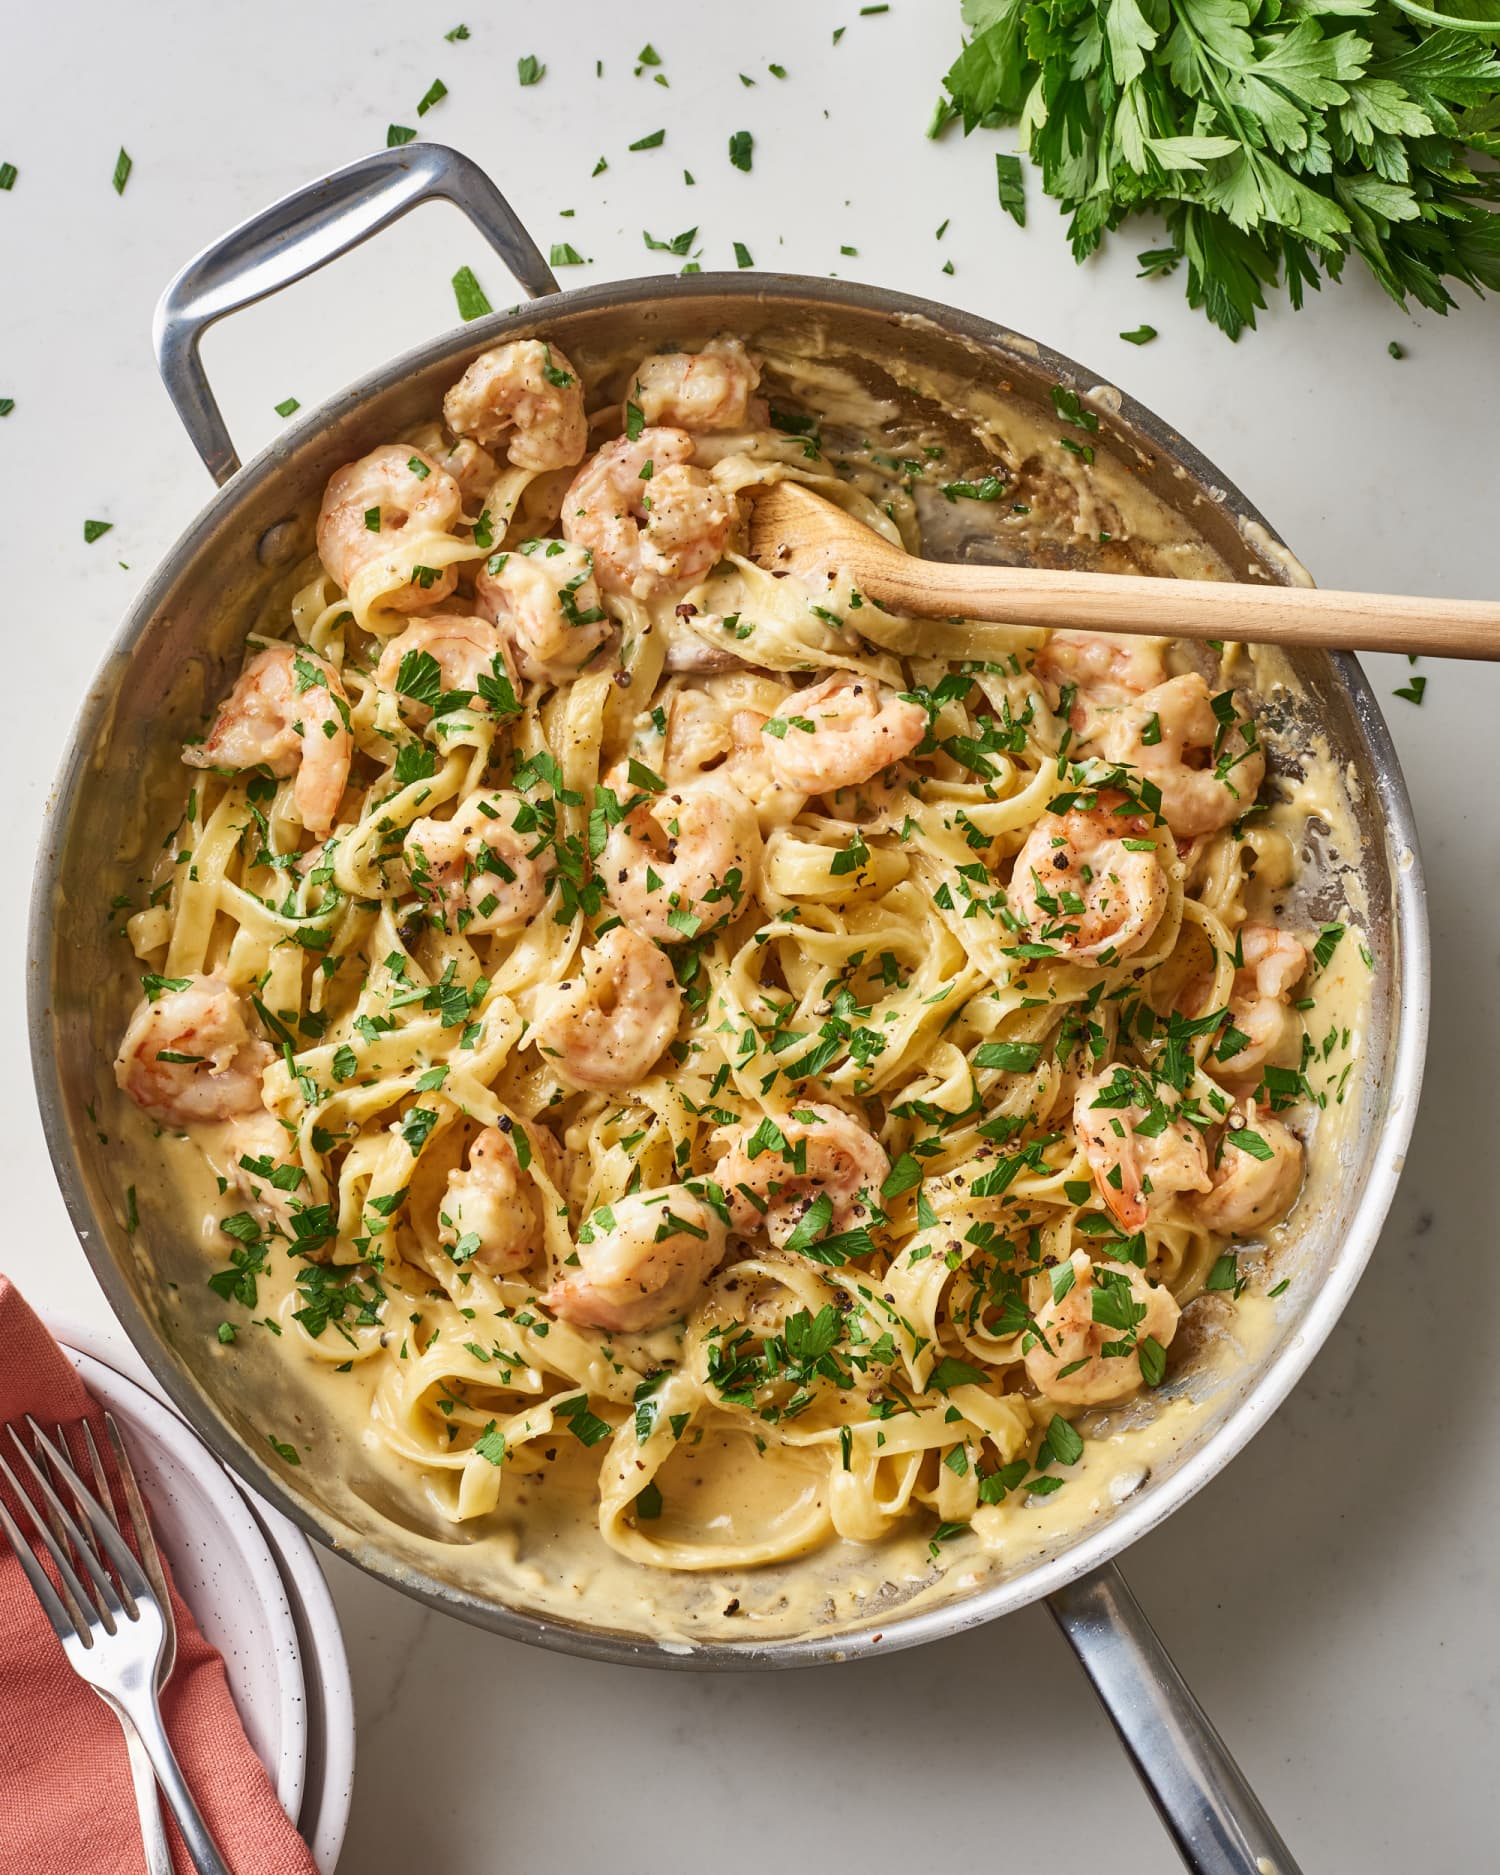 How To Make Easy Shrimp Alfredo from Scratch